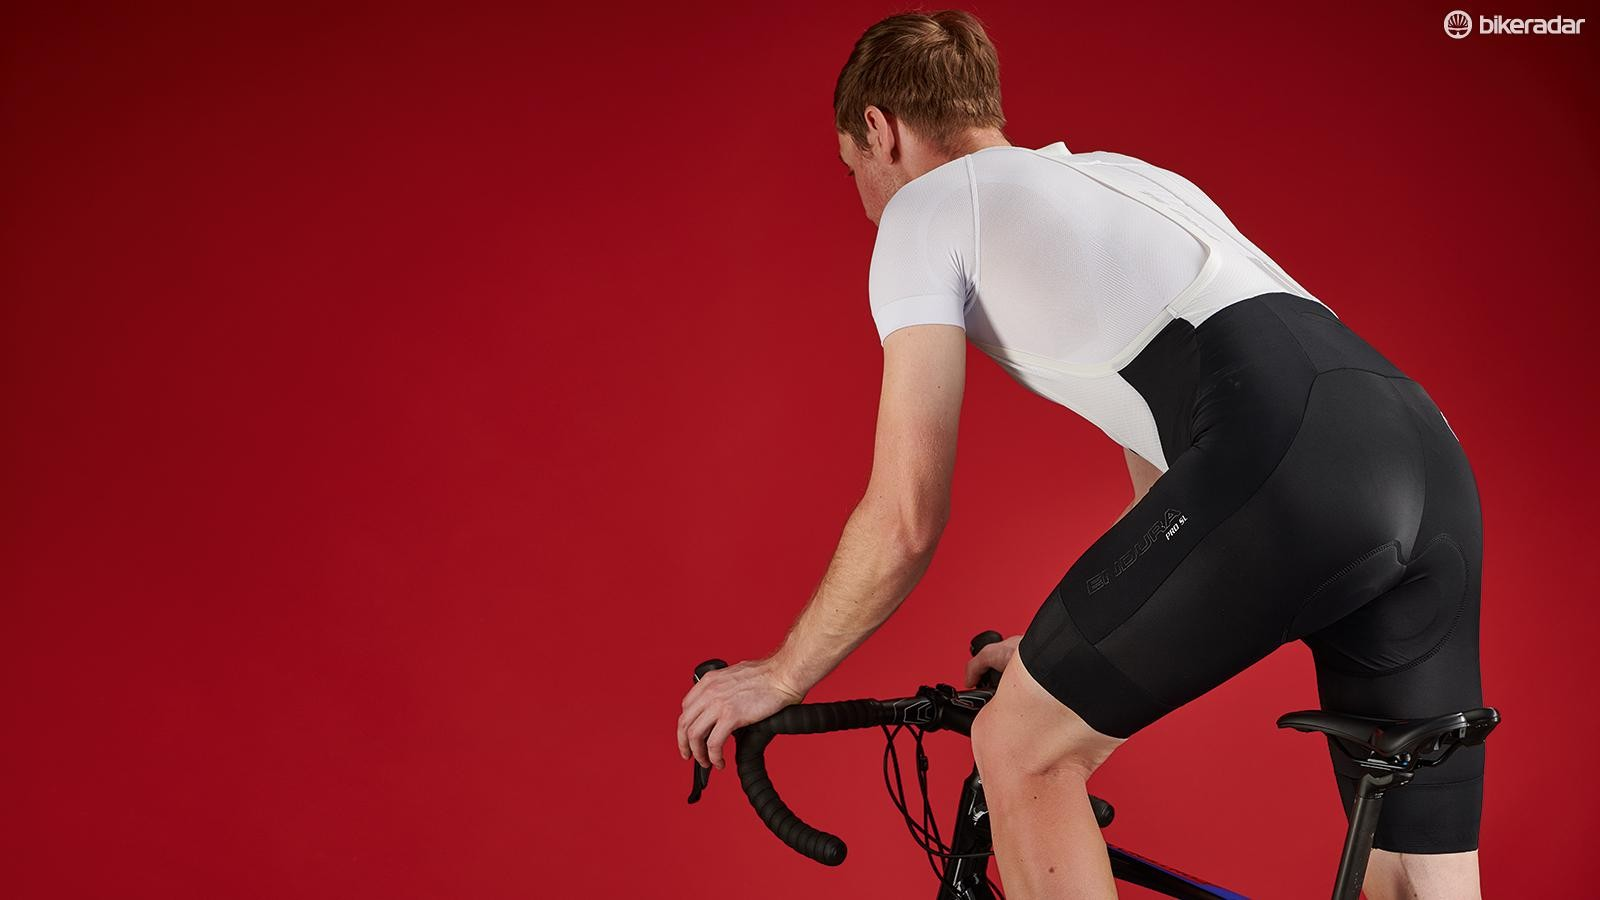 Plenty of fit options from Endura mean there'll be a pair to suit you